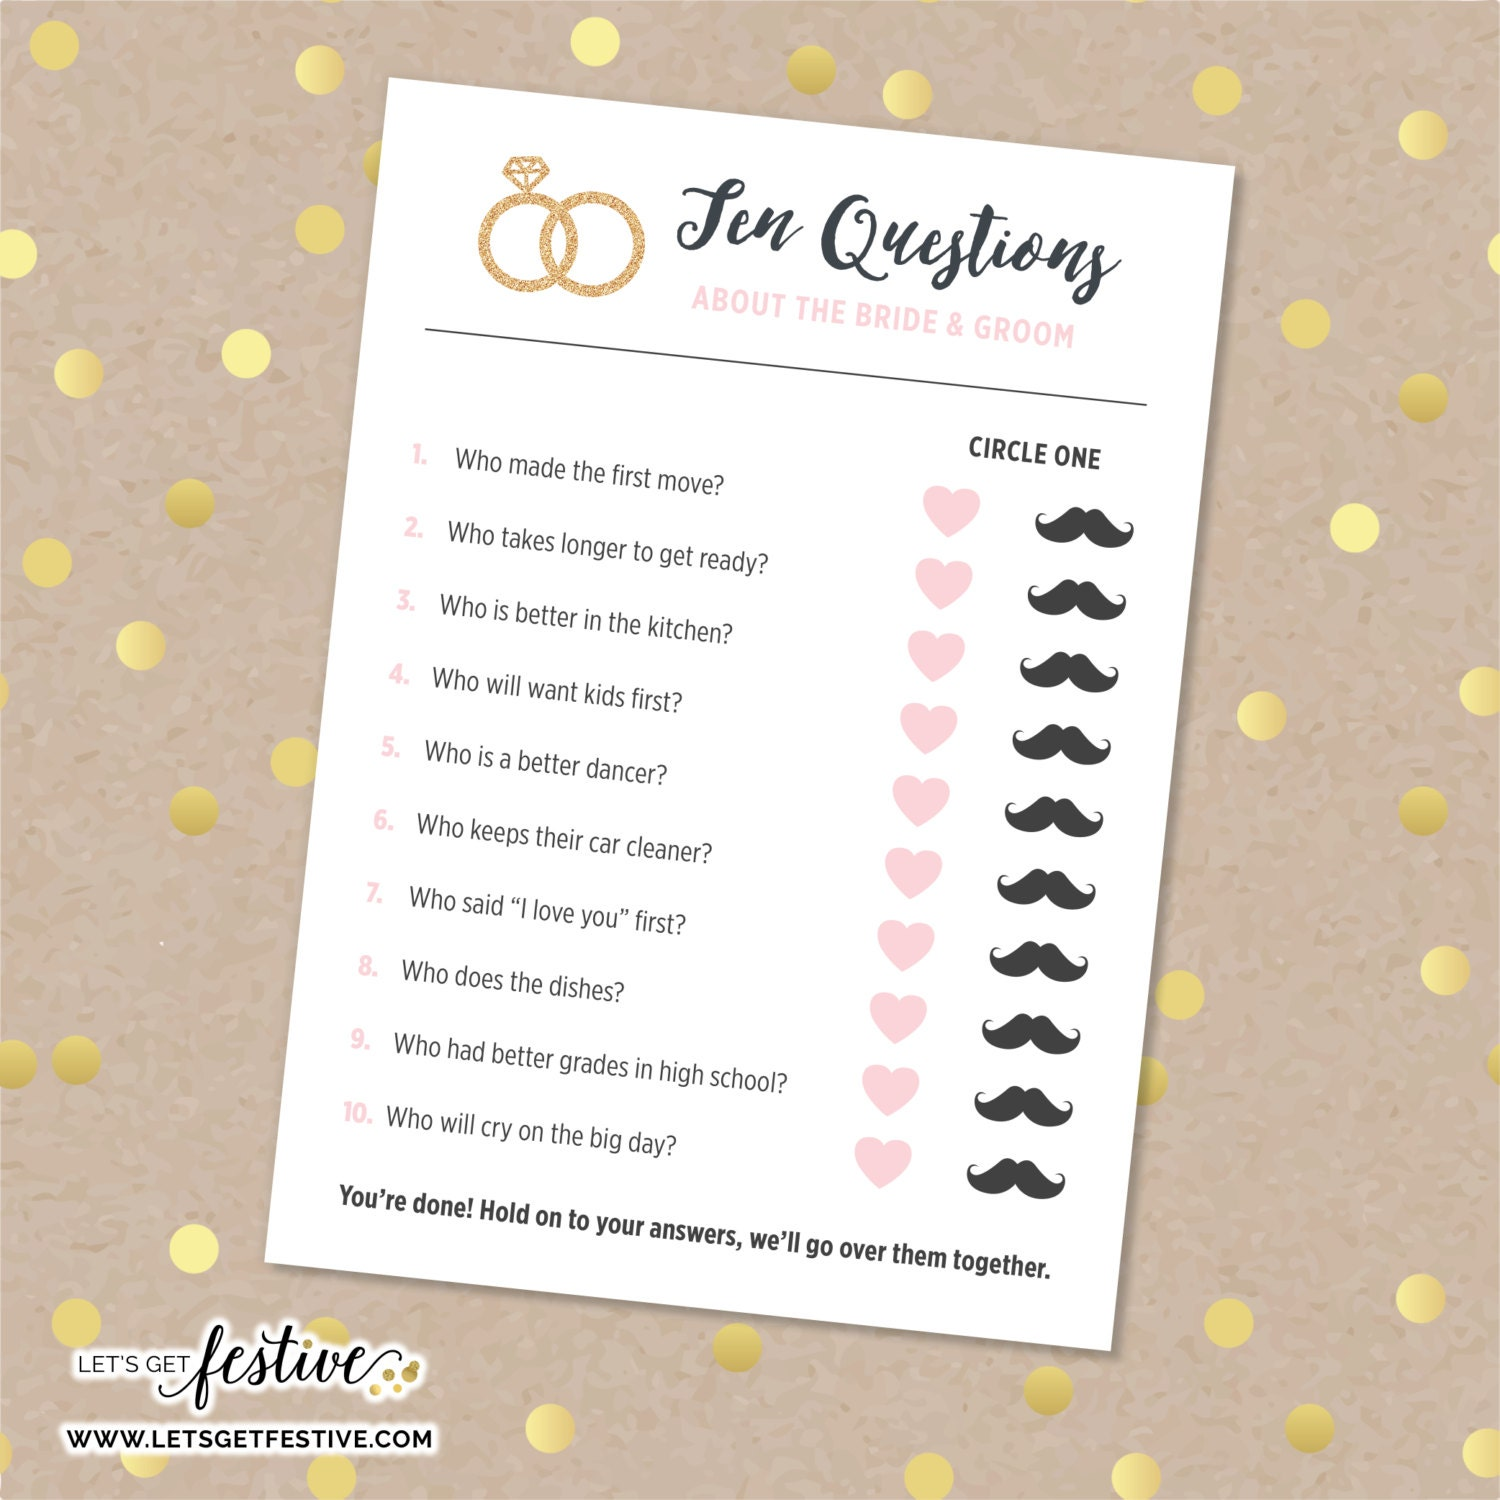 Bride And Groom Questionnaire: Ten Questions About The Bride & Groom Bridal Shower Game